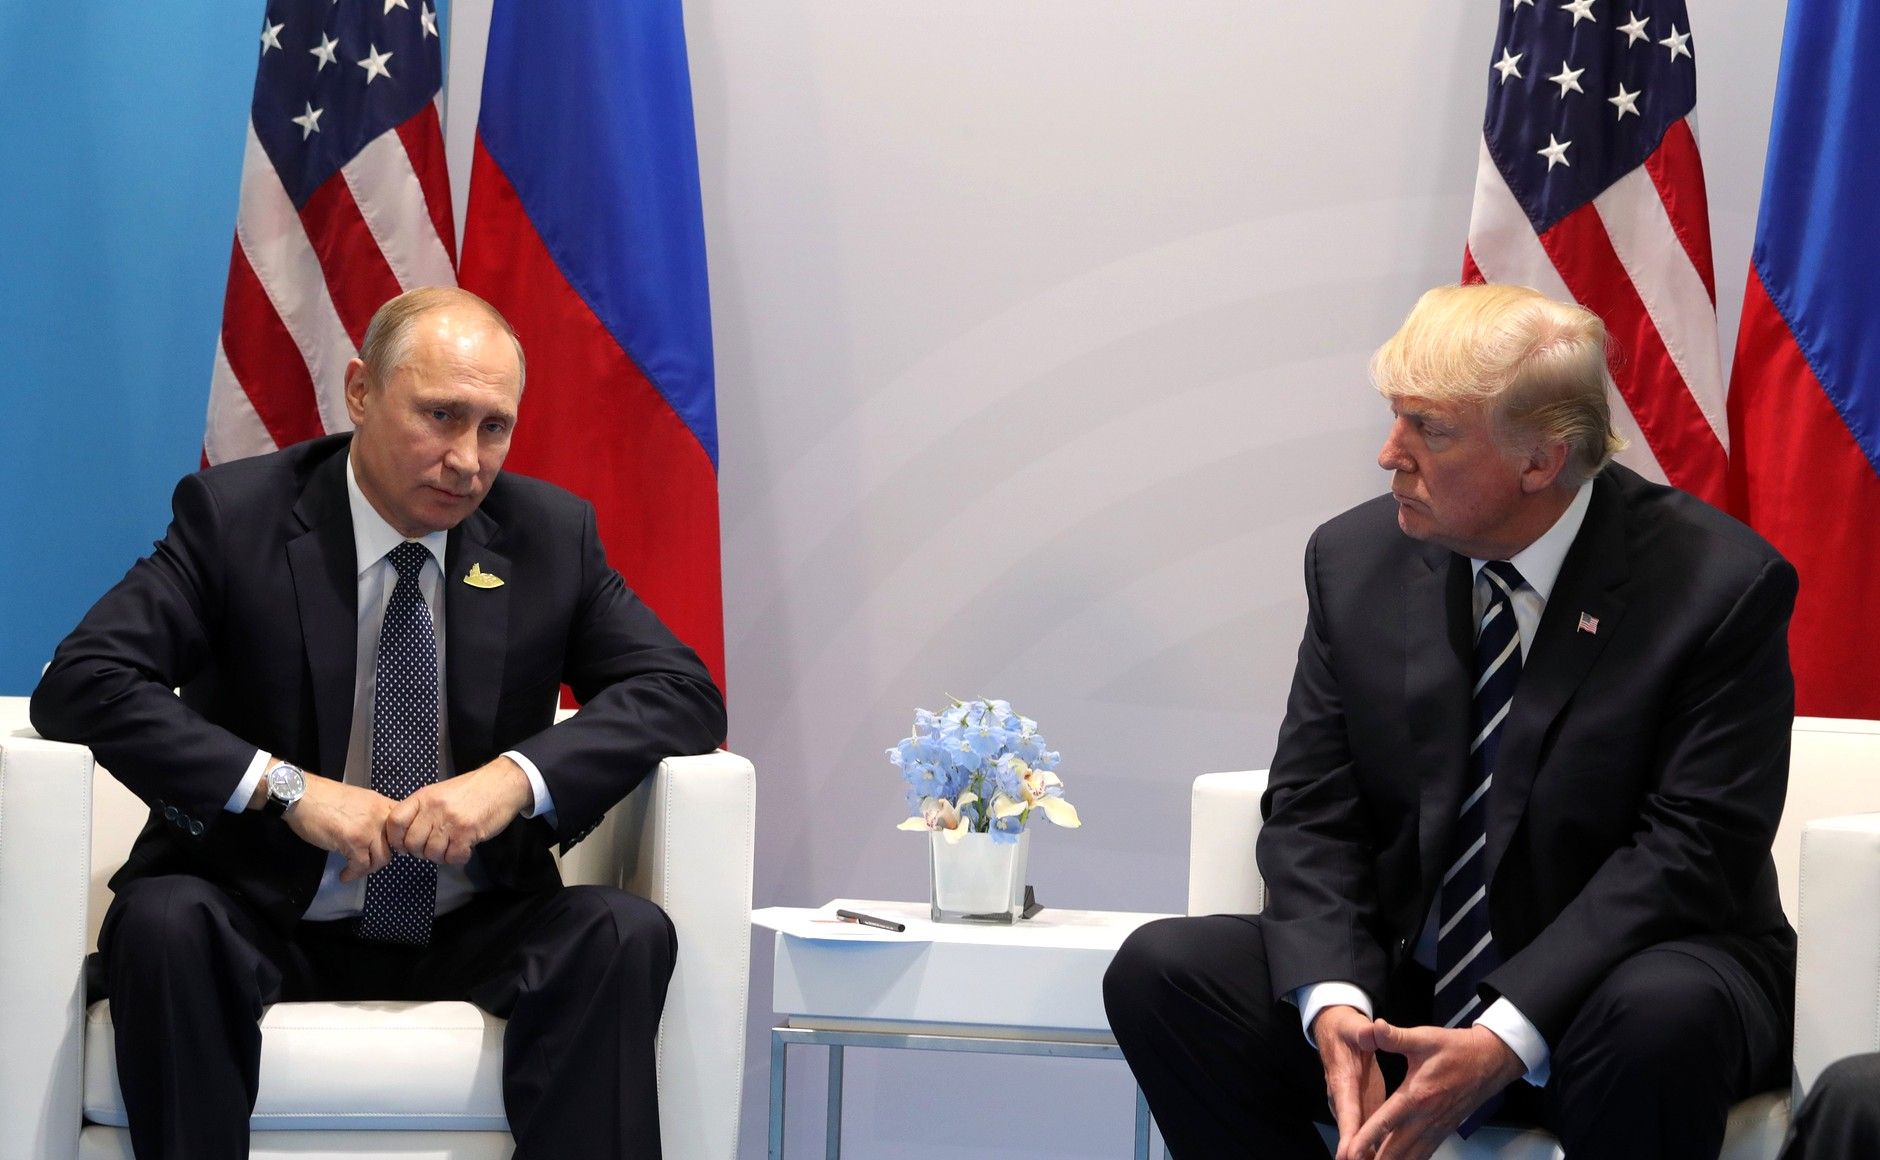 Vladimir_Putin_and_Donald_Trump_at_the_2017_G-20_Hamburg_Summit_(9)